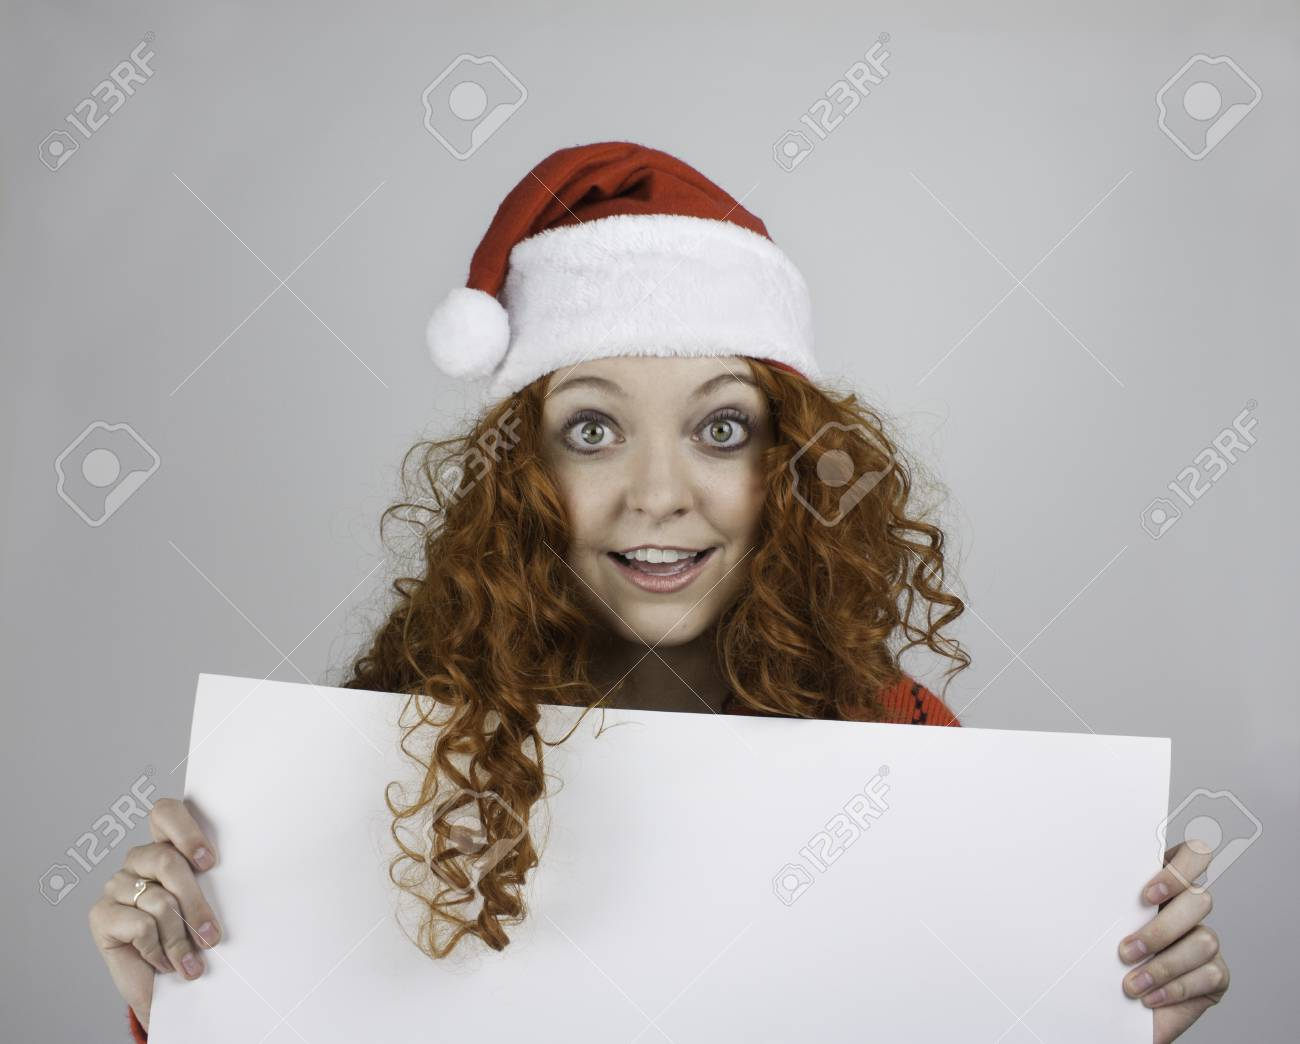 f0703e0d7546a Pretty young woman wearing Santa hat and holding blank sign Stock Photo -  25783566